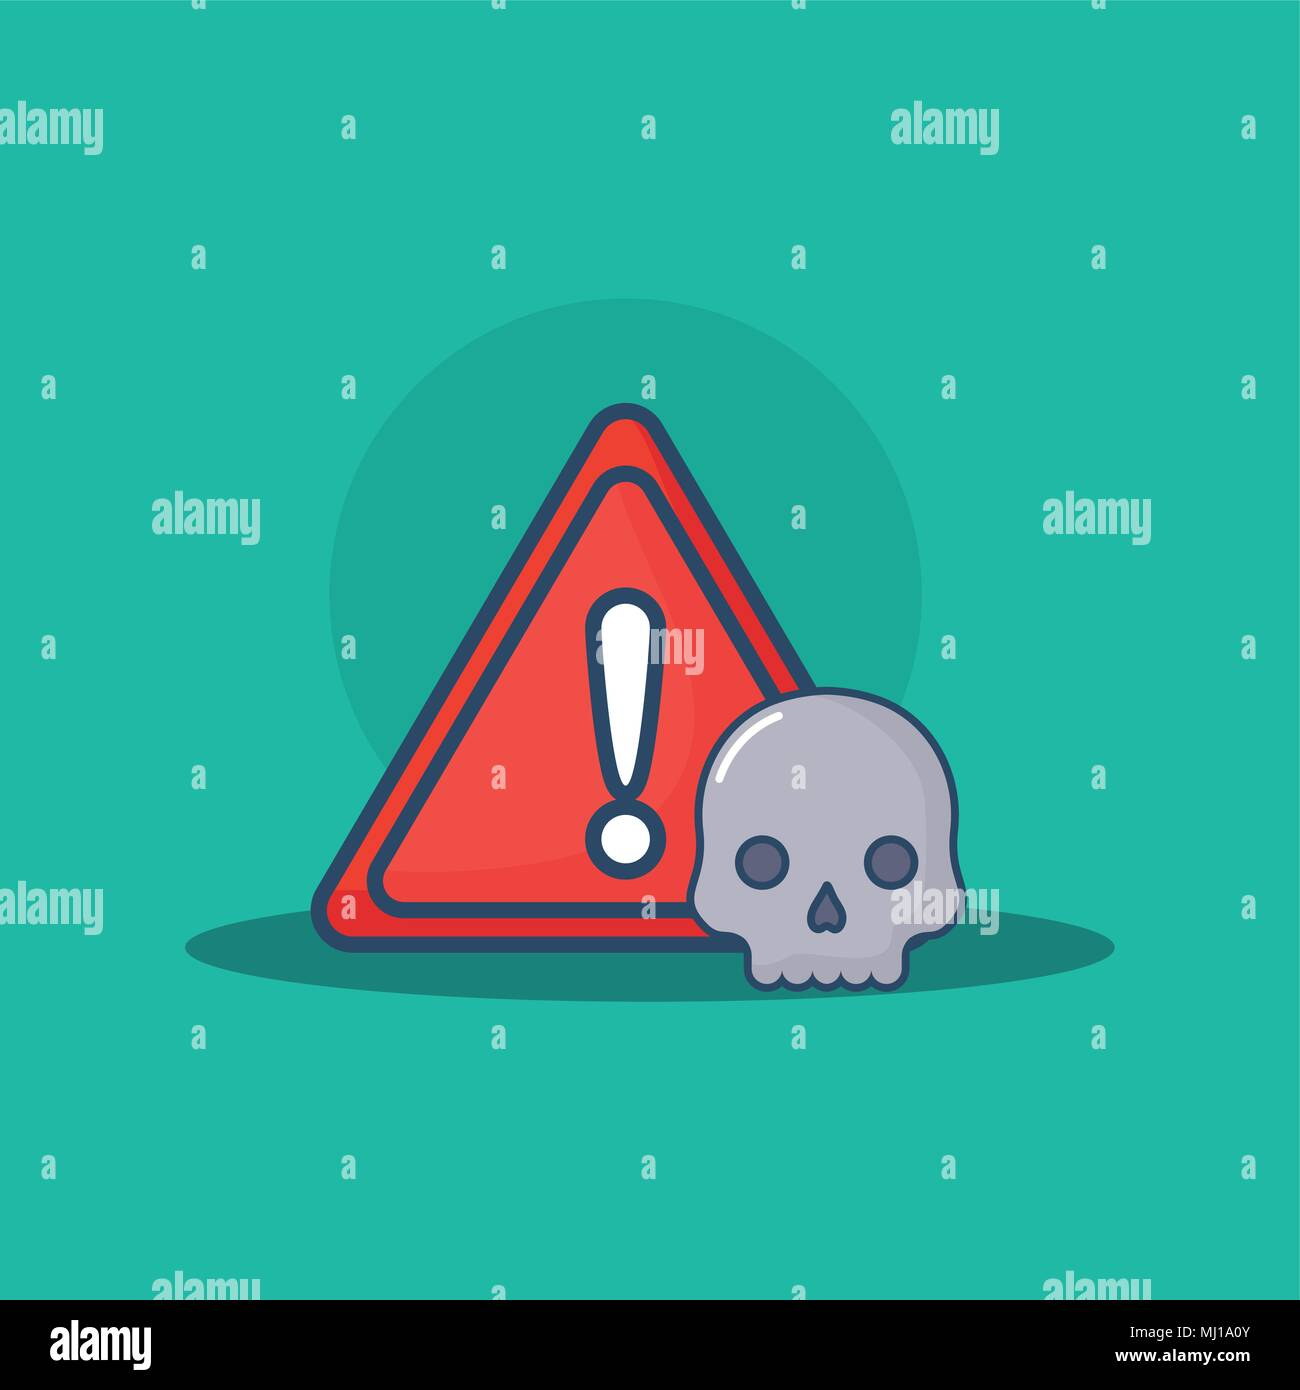 warning sign with skull over turquoise background, colorful design. vector illustration - Stock Image